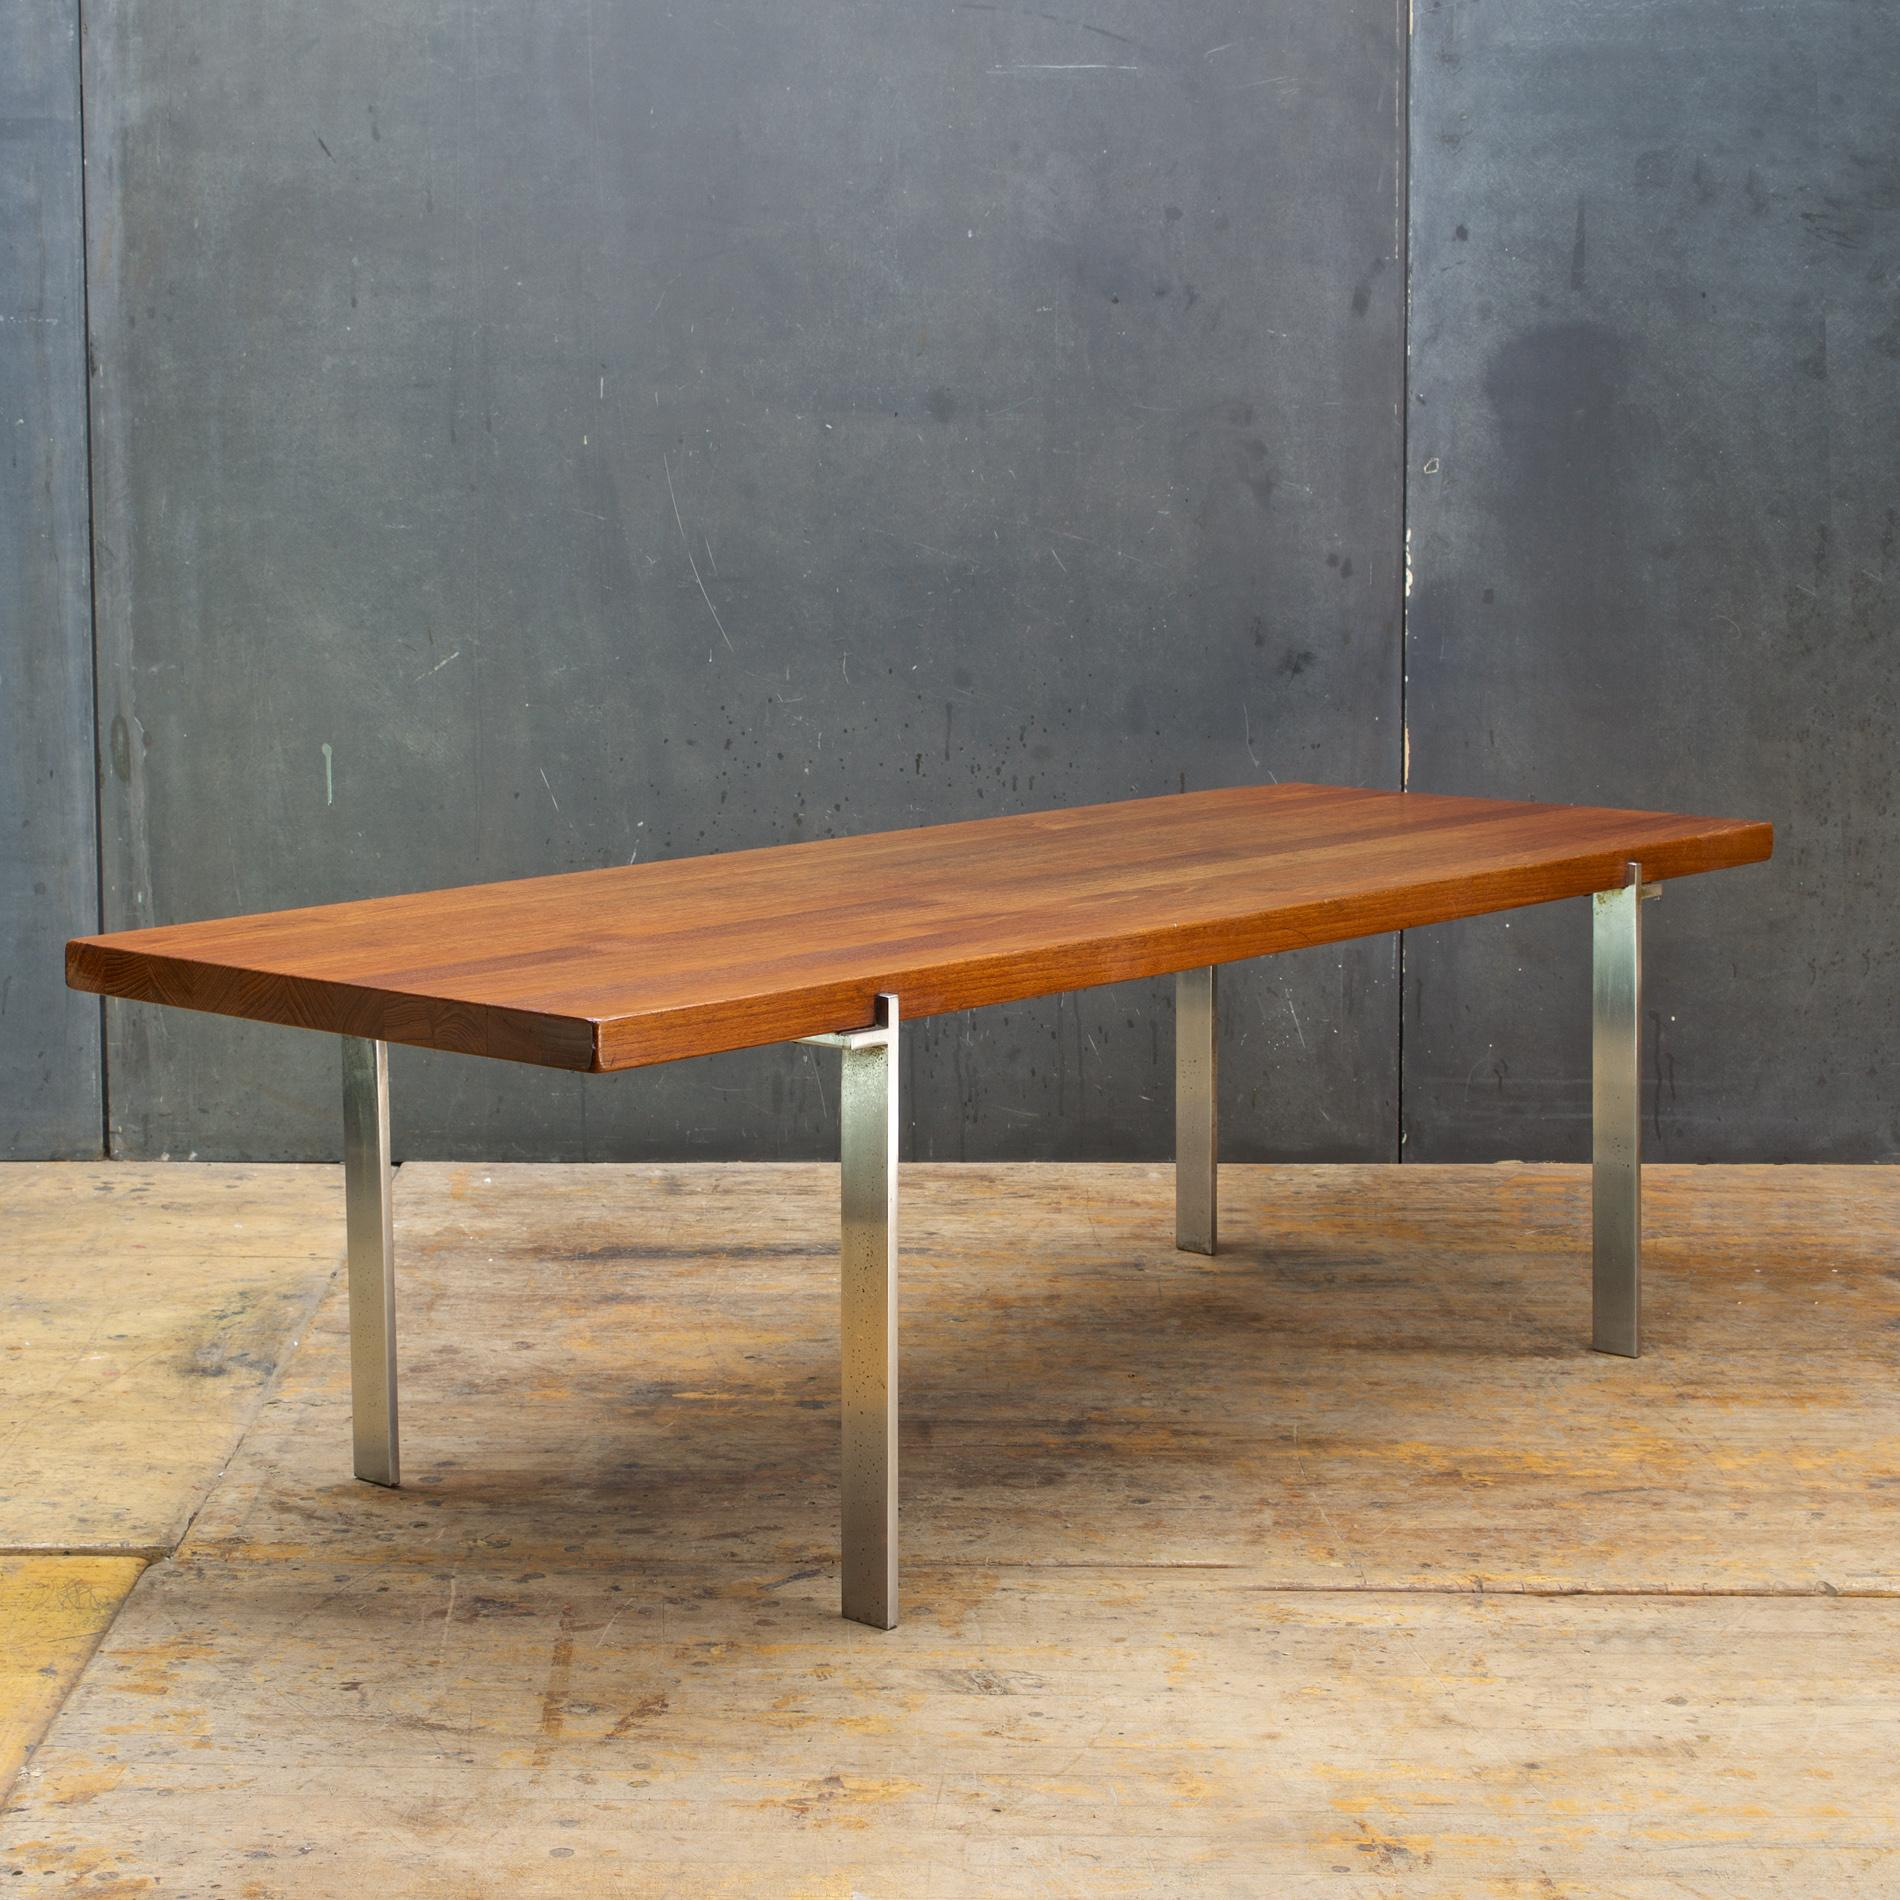 Teak Wandplank 1960s American Studio Craft Coffee Table Solid Teak Plank Welded Steel Baltimore